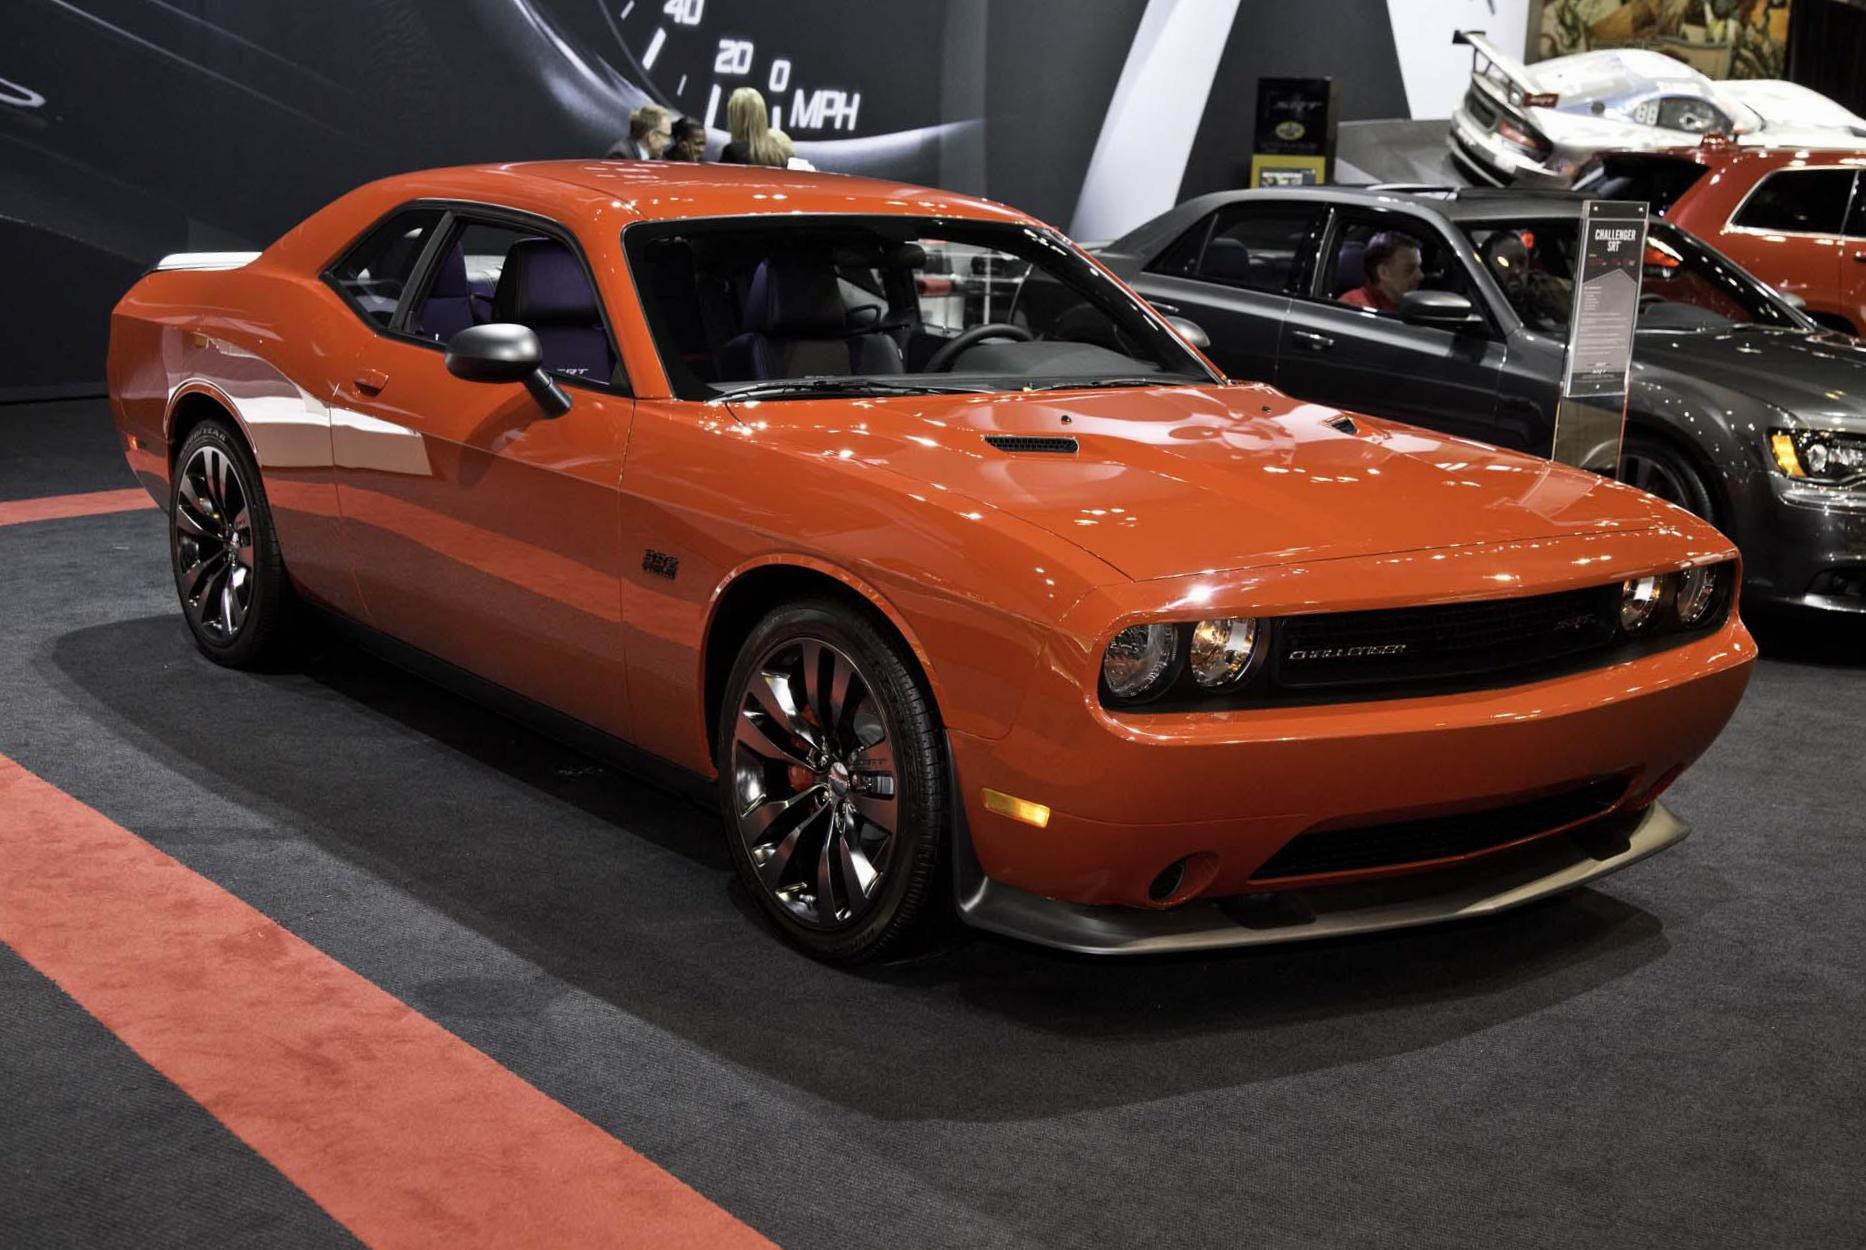 Dodge Challenger s and Specs Dodge Challenger lease and